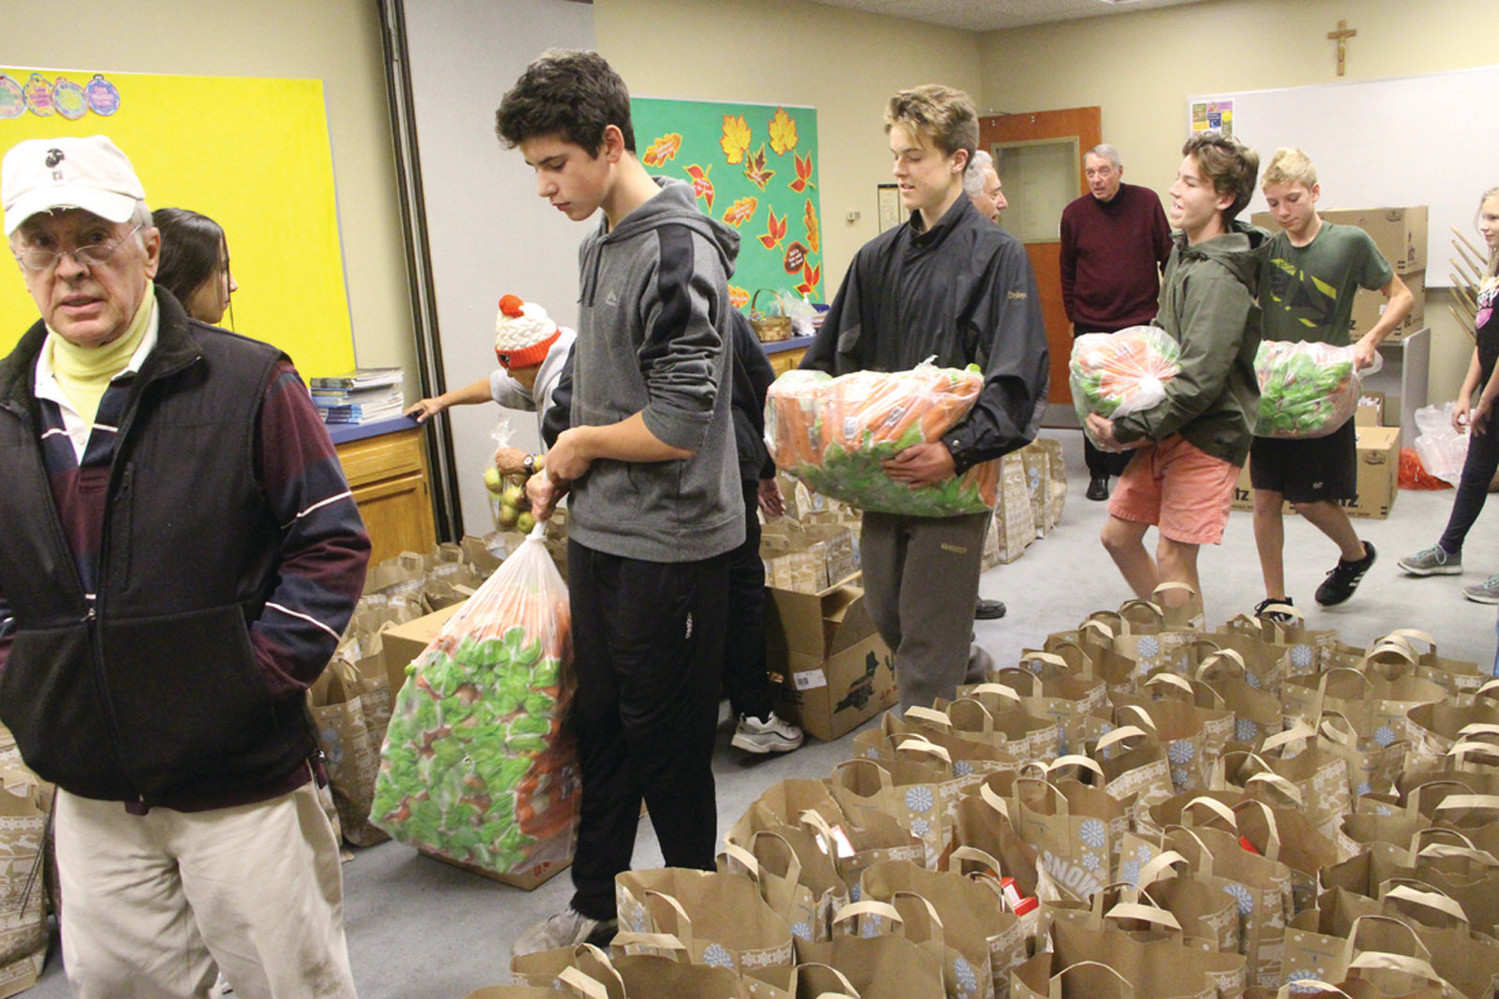 PUTTING IT ALL TOGETHER: Assembly line tactics came into play Monday as St. Gregory the Great Church parishioners packed 150 food baskets for needy families.